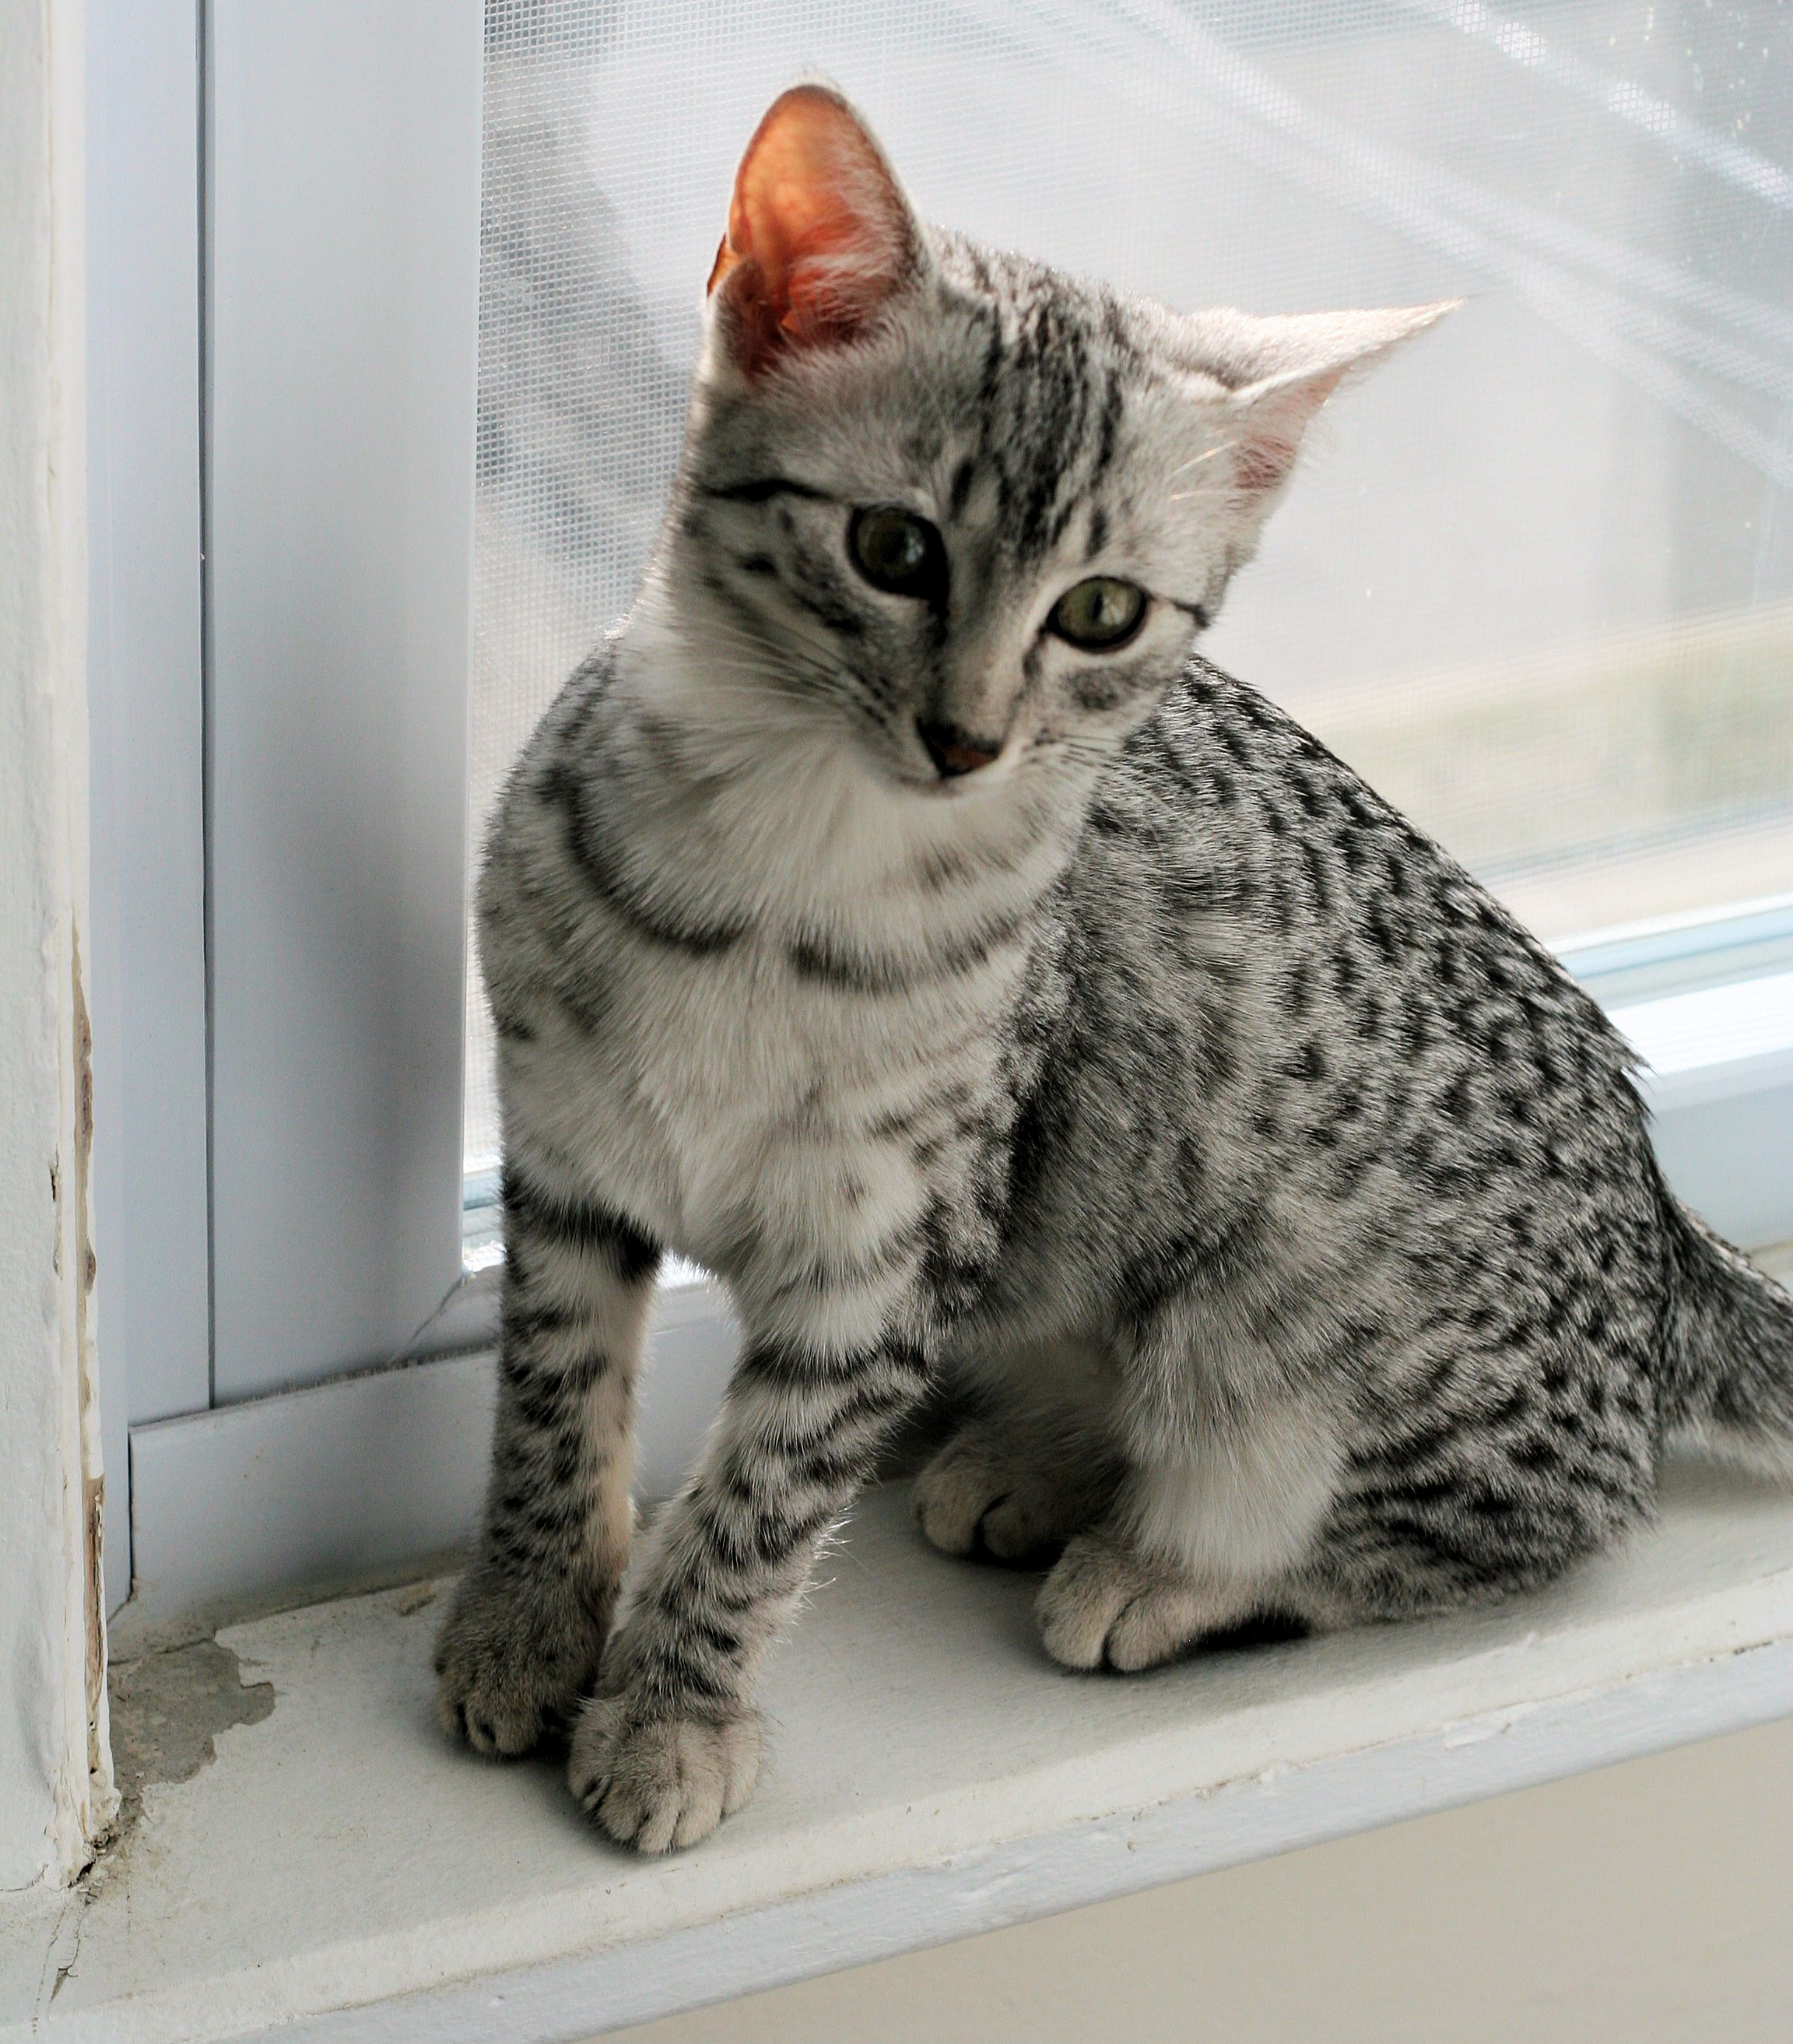 Egyptian Maus Cat Are A Small To Medium Sized Short Haired Cat Breed Along With The Bahraini Dilmun Cat They Are One O Egyptian Mau Kitten Photos Cat Breeds